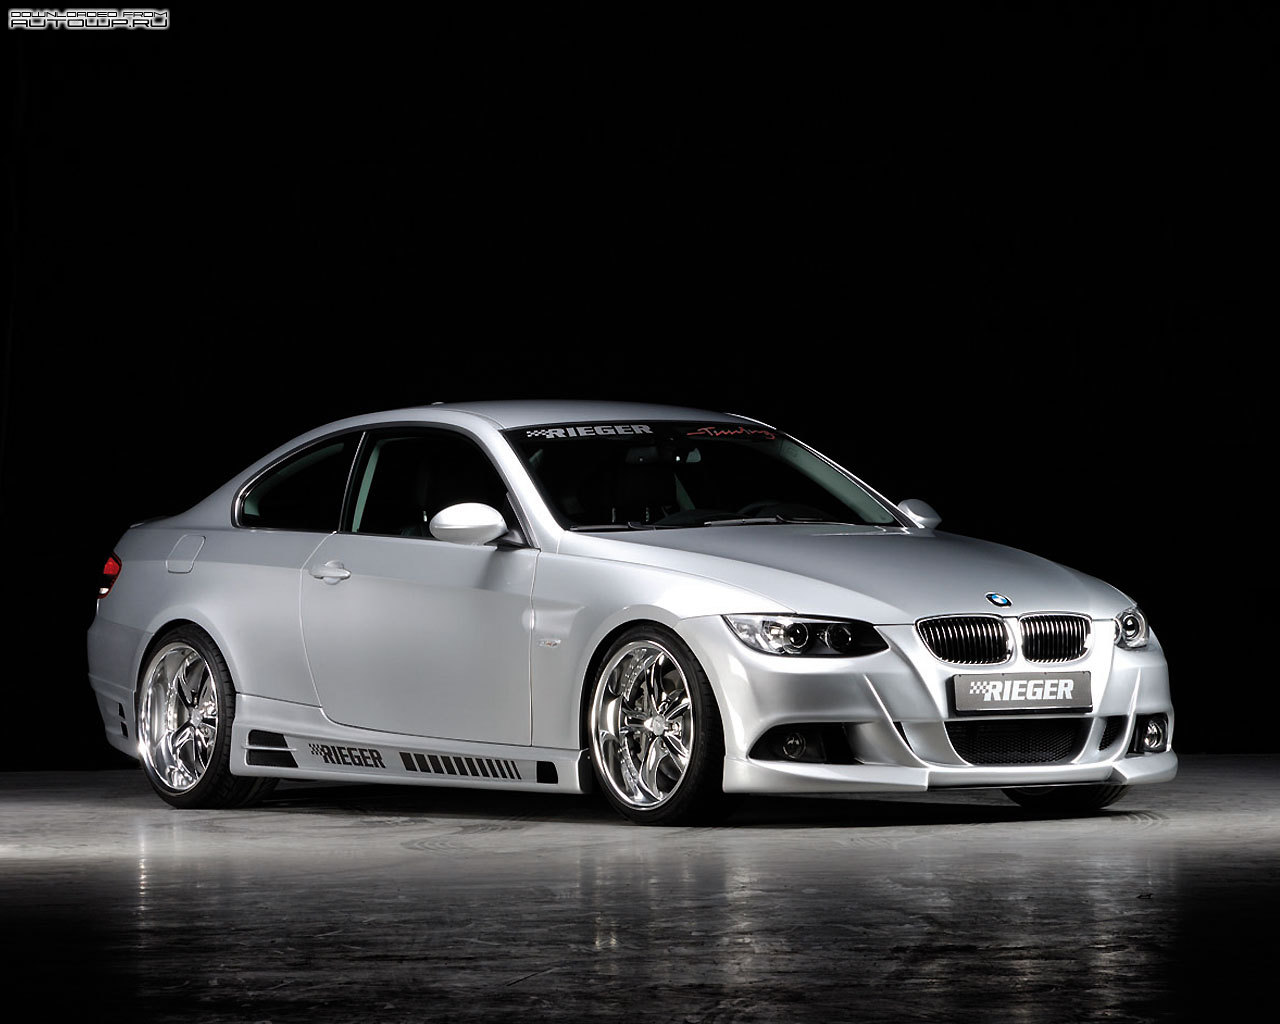 rieger bmw 3 series coupe e92 photos photogallery with 4 pics cars pictures. Black Bedroom Furniture Sets. Home Design Ideas